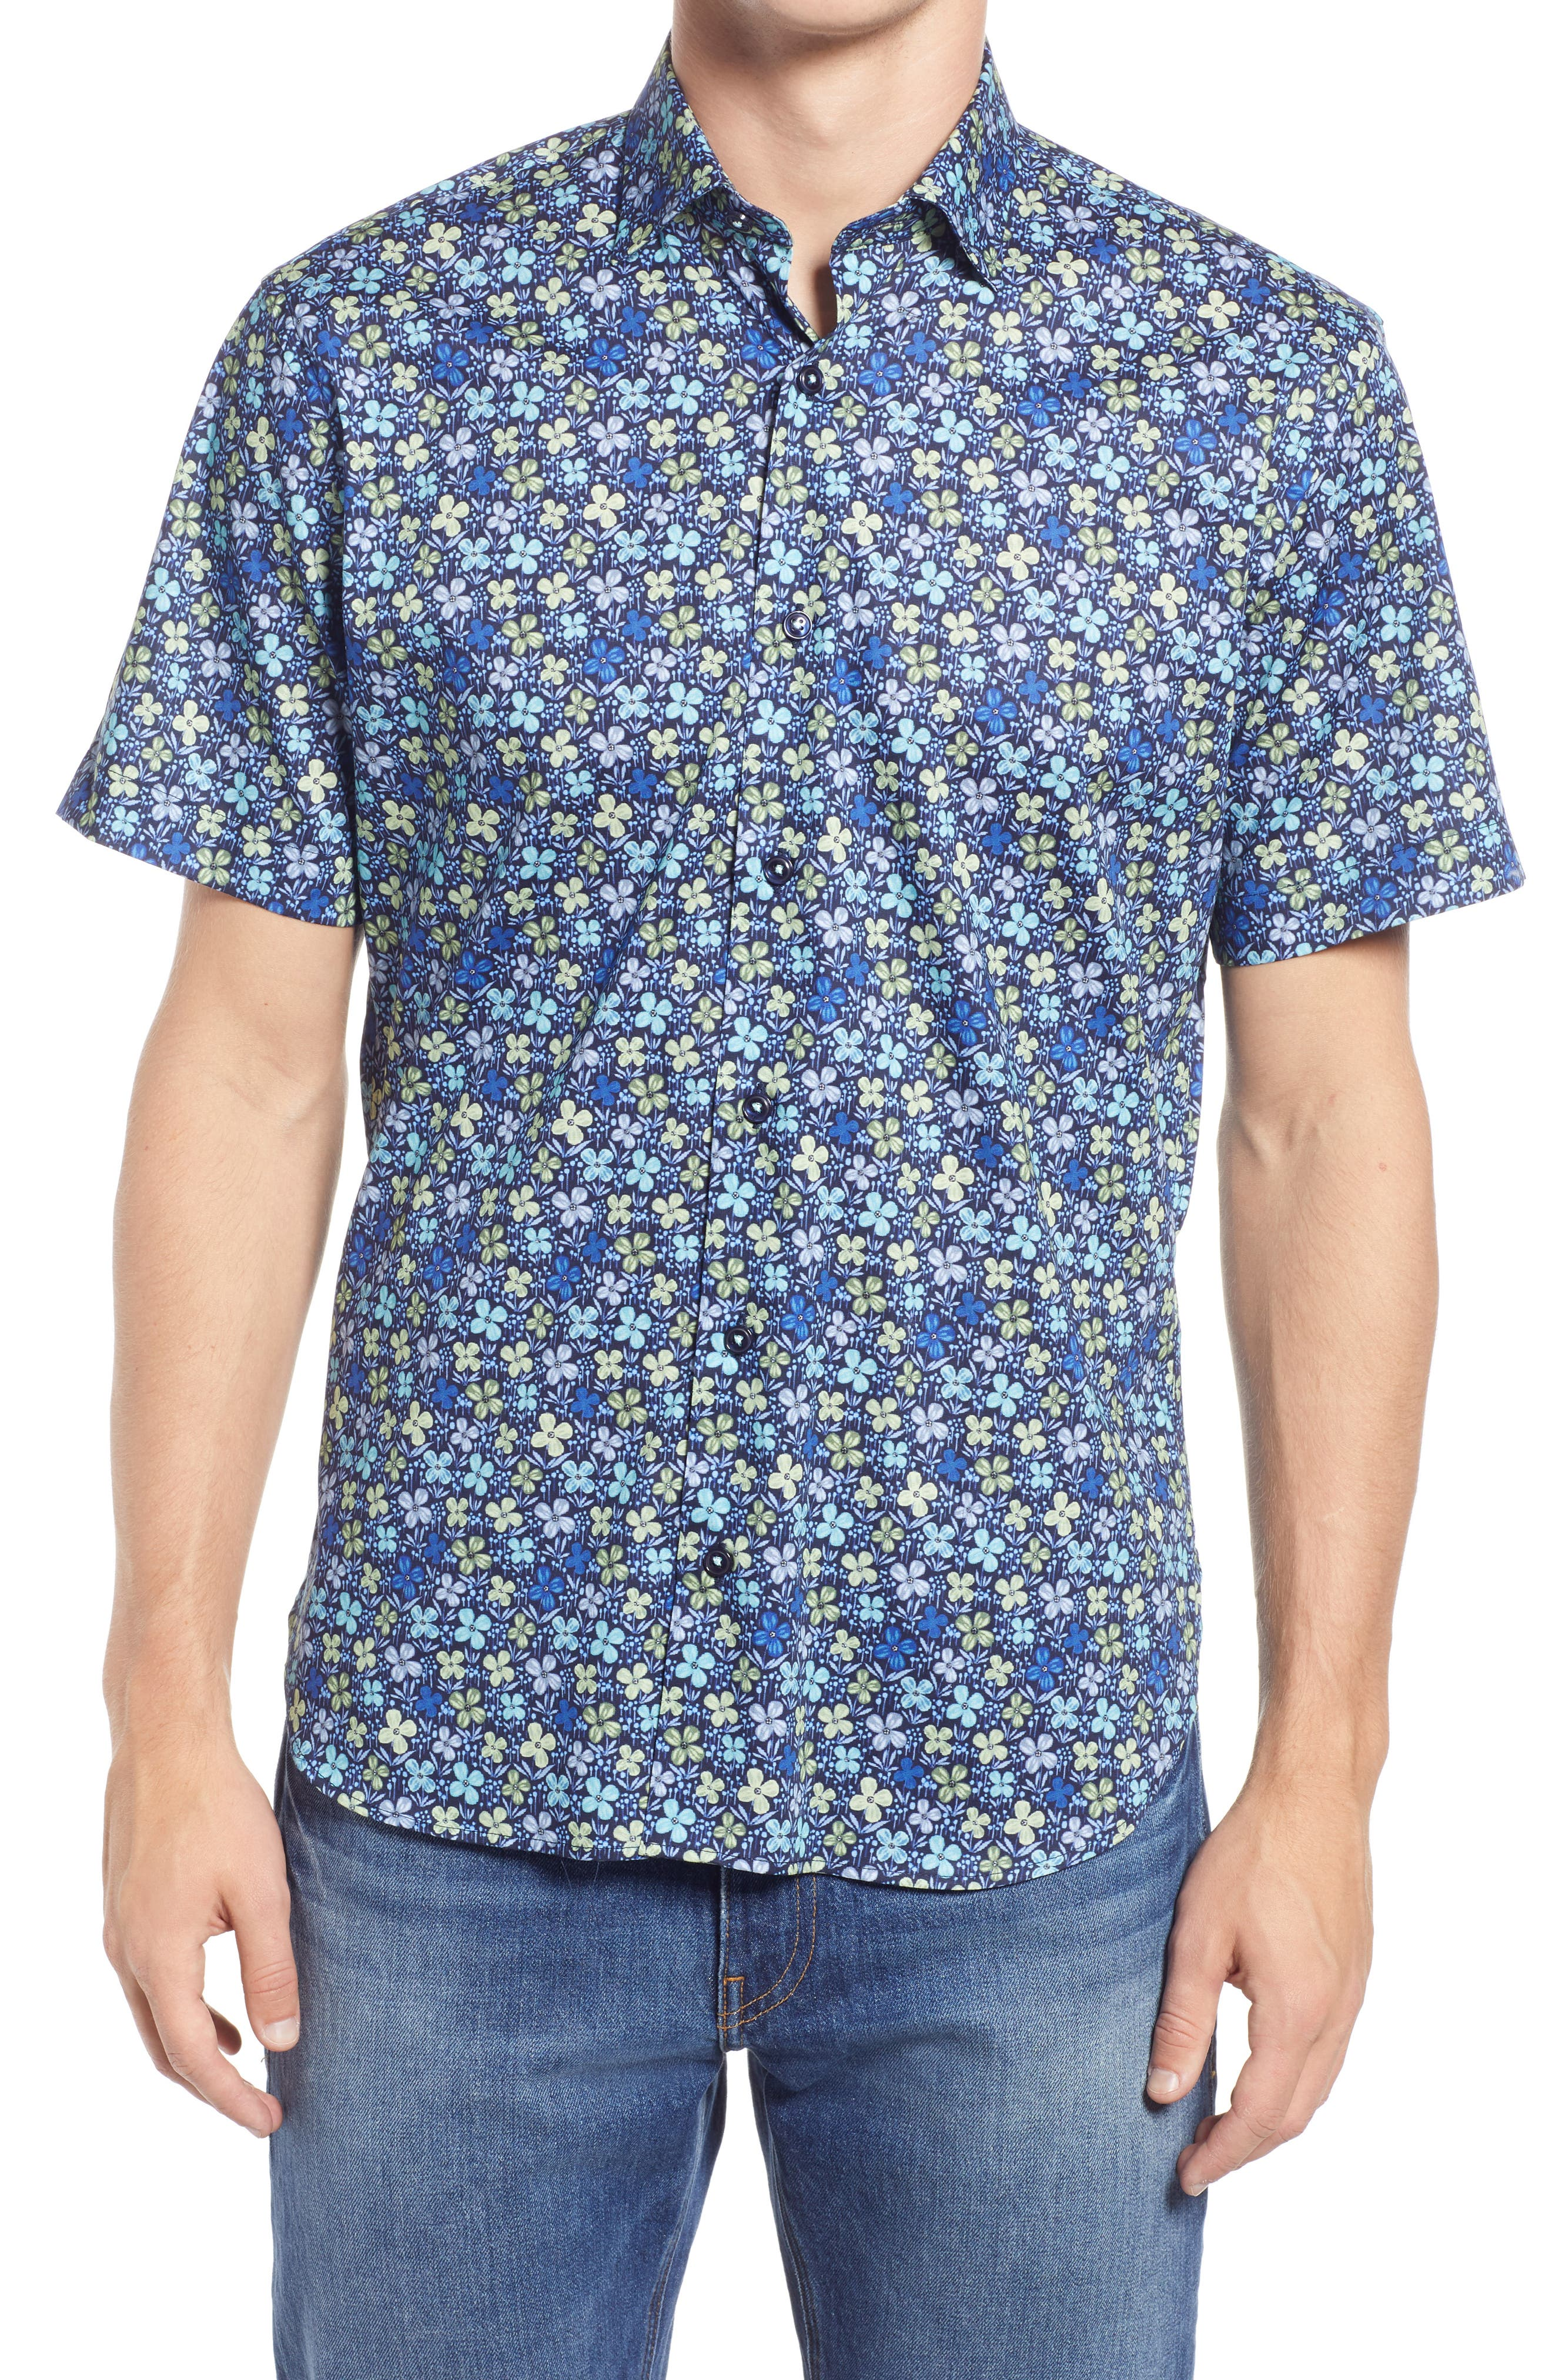 Sonoma Floral Short Sleeve Stretch Button-Up Shirt